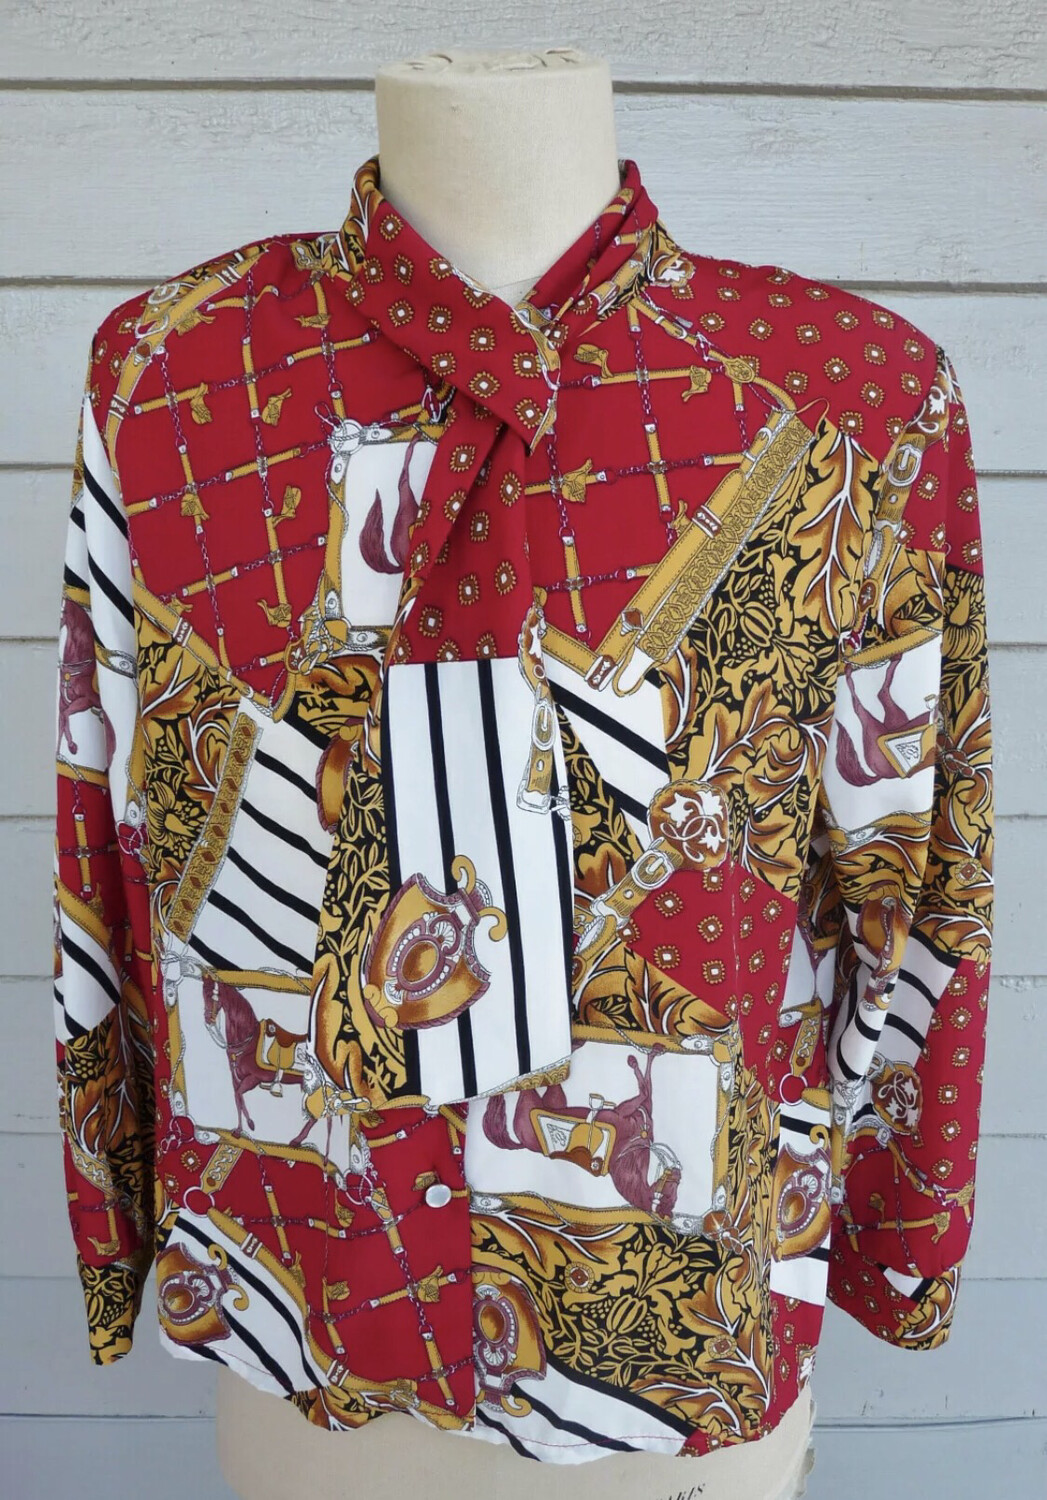 Red Equestrian Vibrant Blouse - L